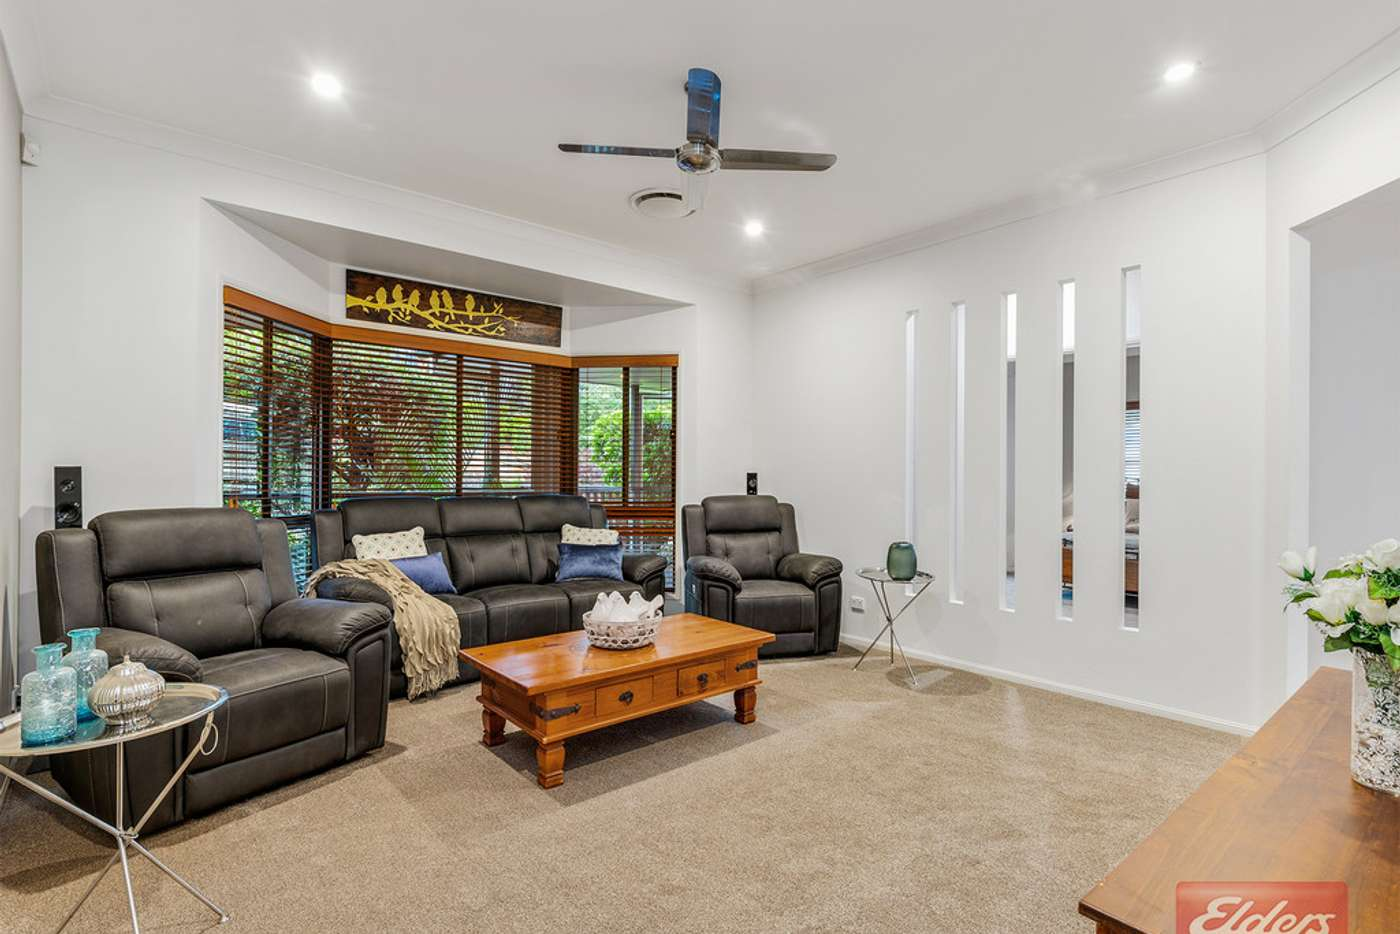 Sixth view of Homely house listing, 5/5 MEOWN COURT, Cornubia QLD 4130